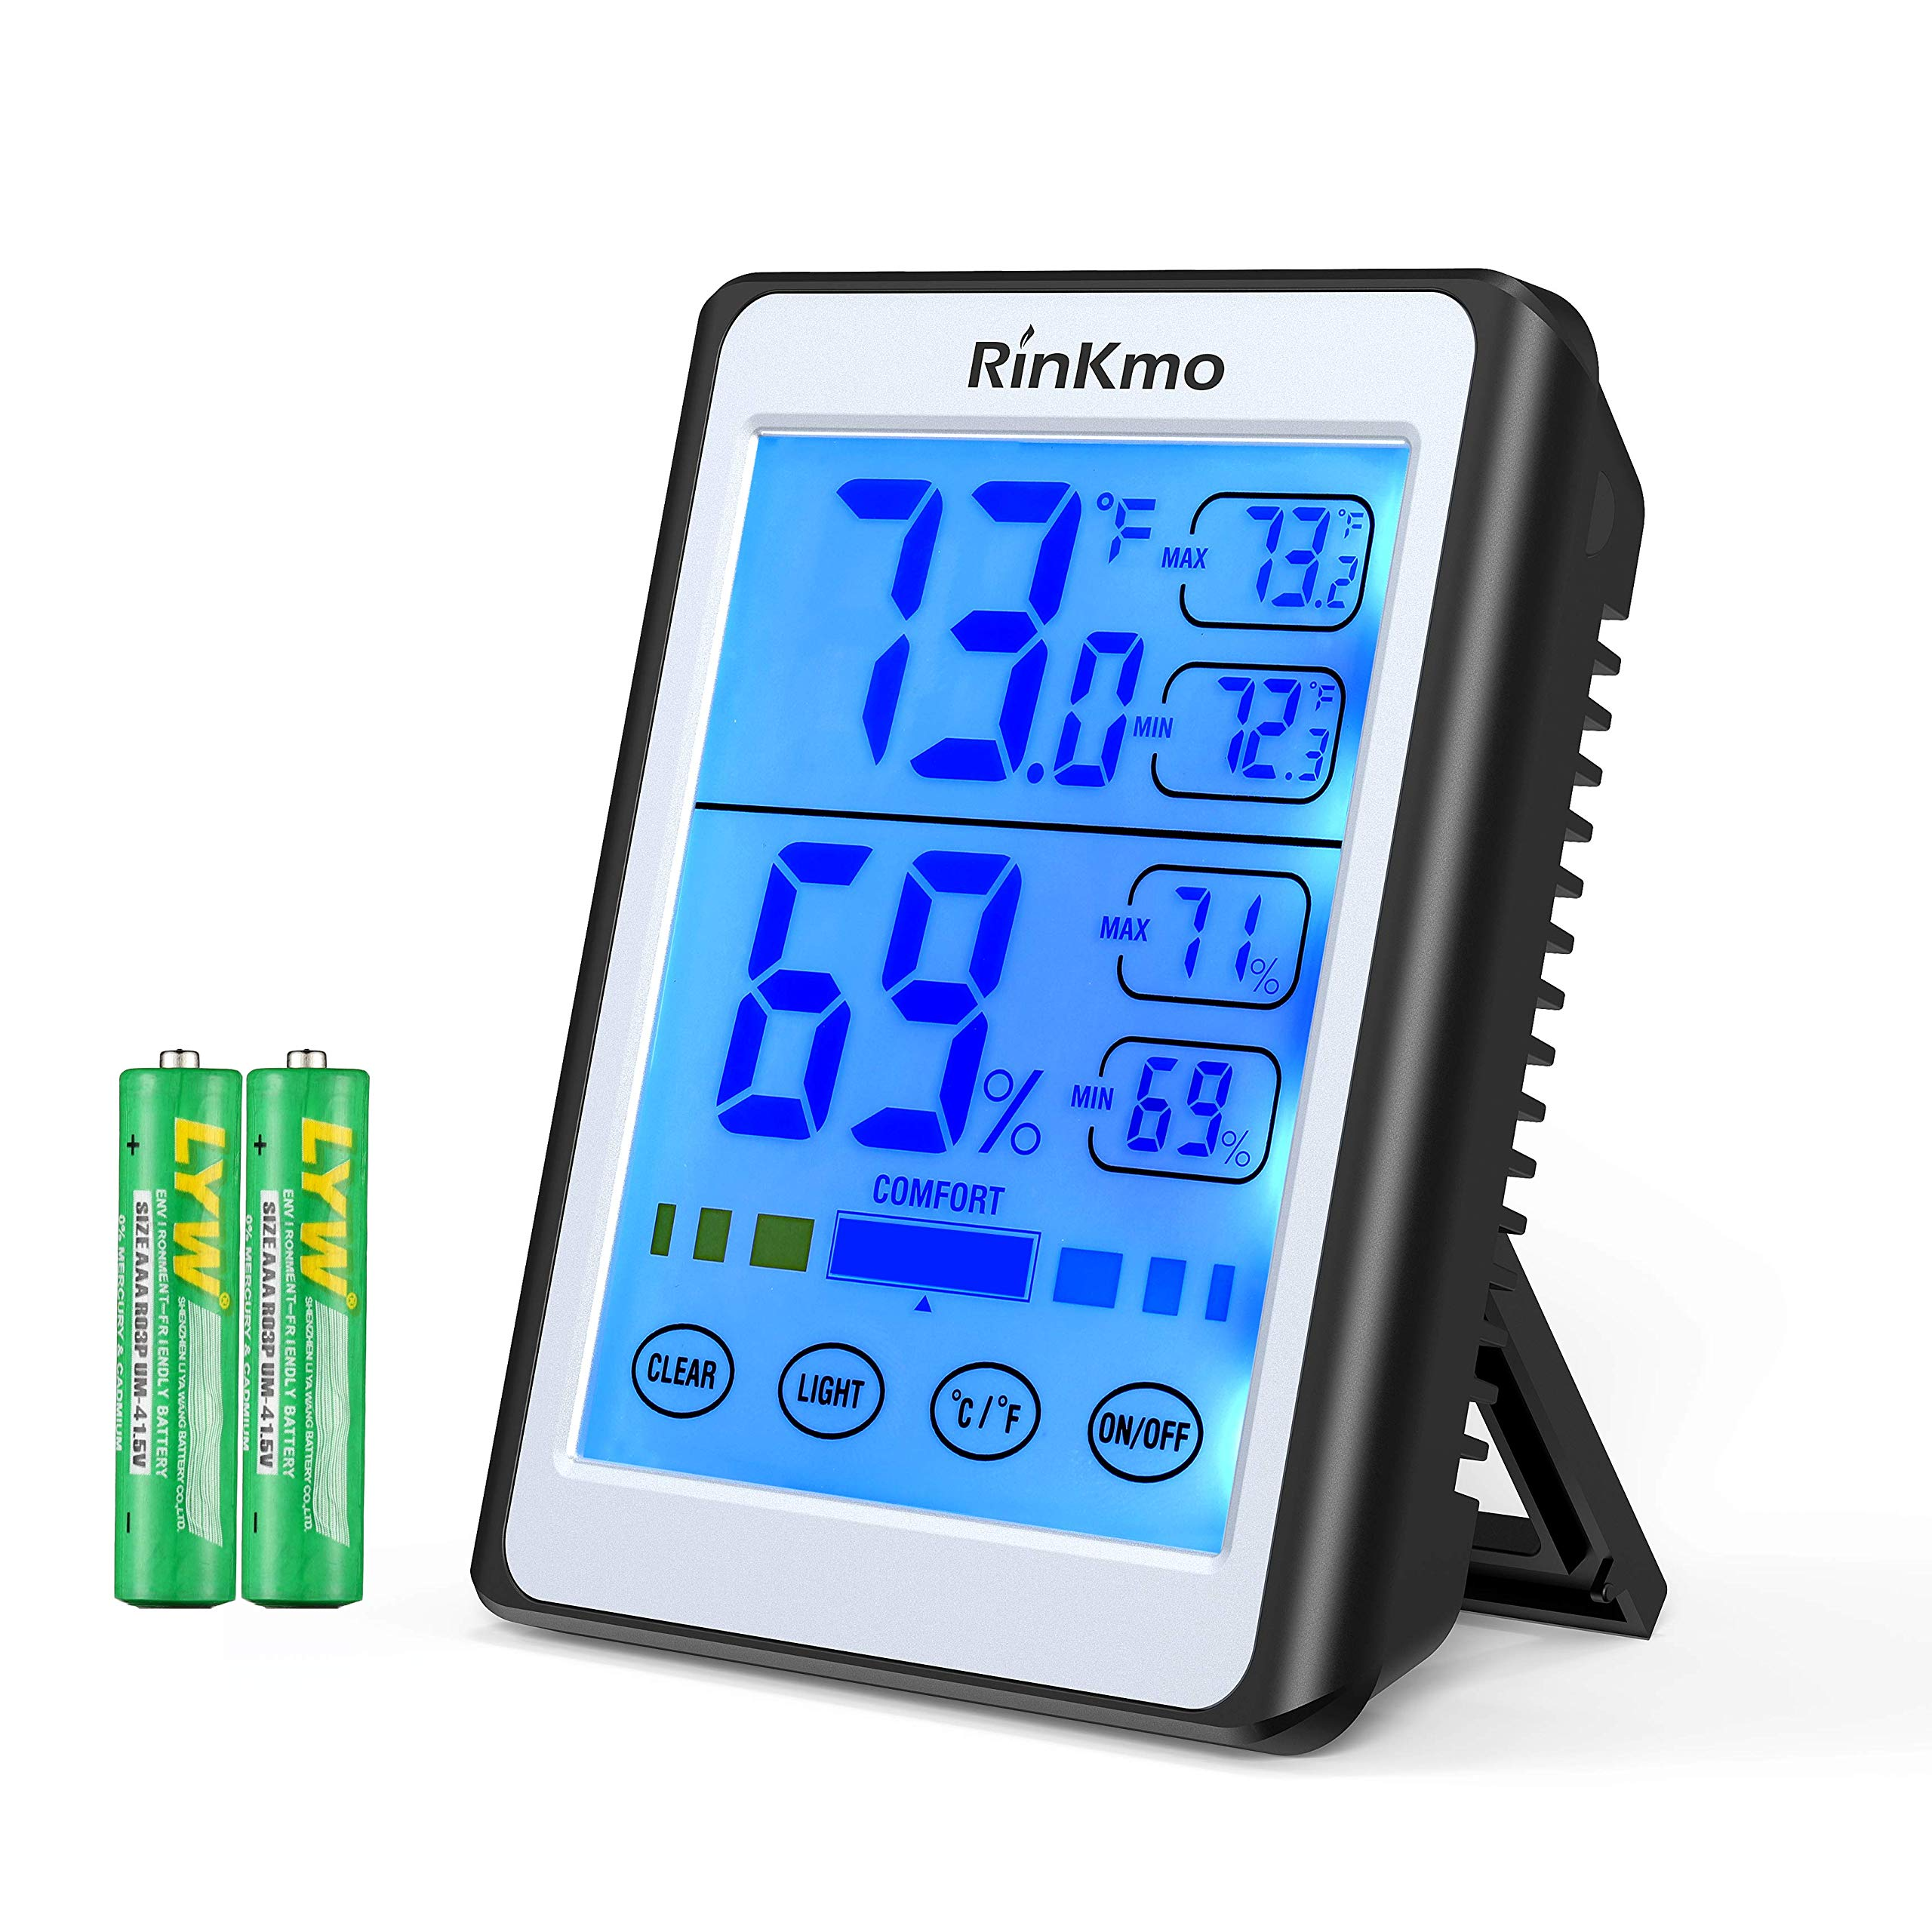 RINKMO Digital Hygrometer Indoor Thermometer Accurate Humidity Guage and Temperature Indicator, Touch LCD Backlight Humidity Monitor, Wall Mount & Desktop Hygrometer